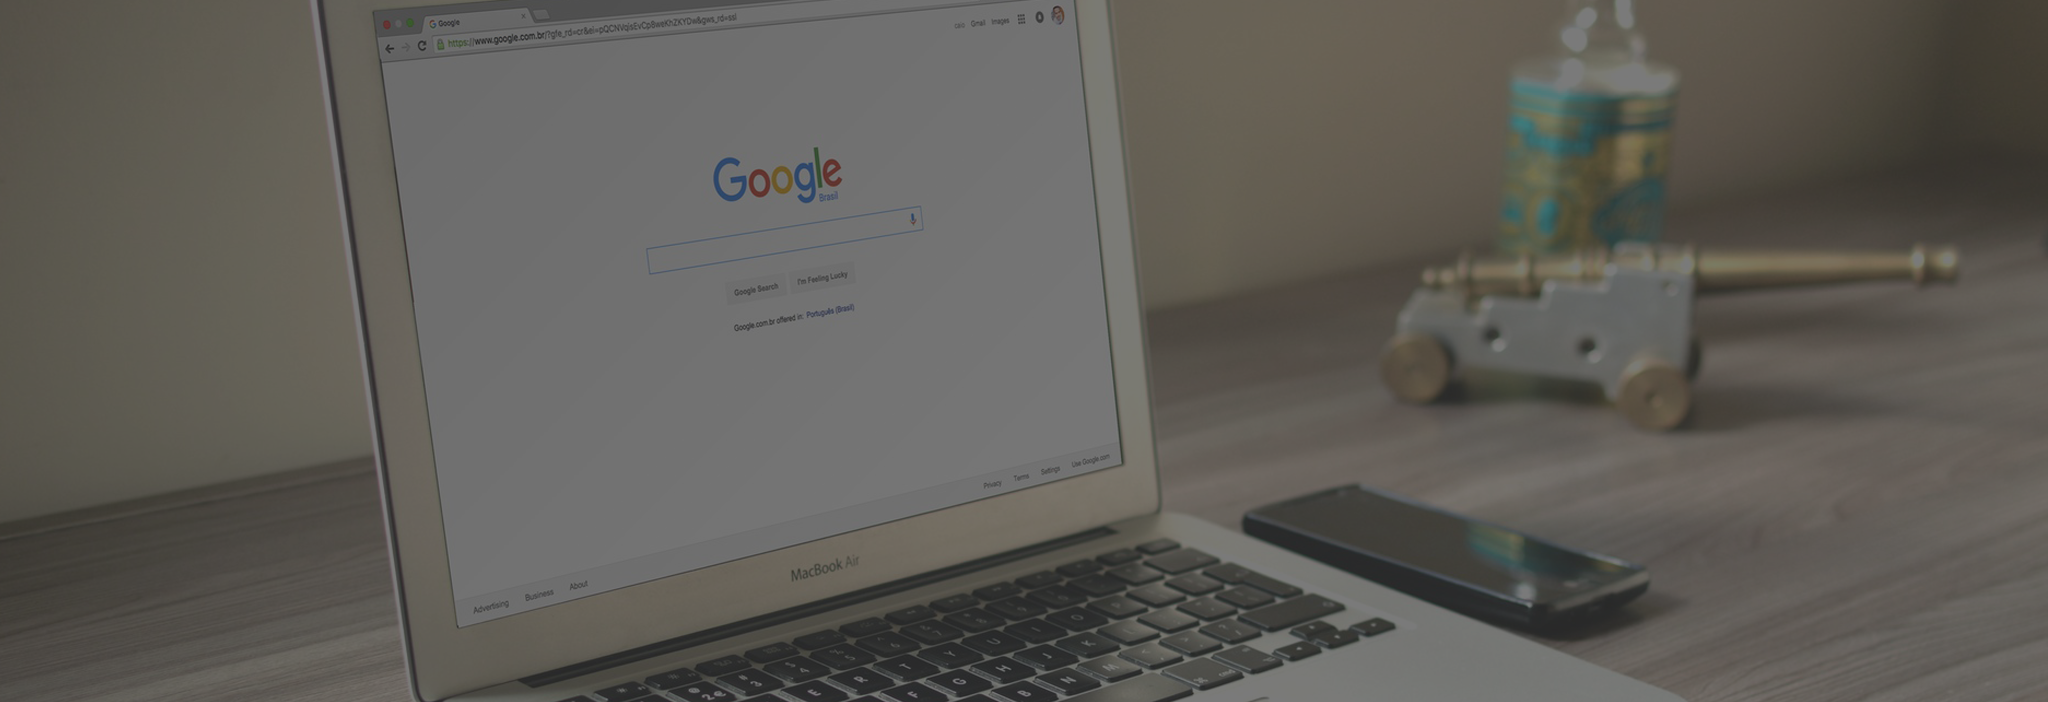 How long does it take to rank in Google, really? Link Roundup